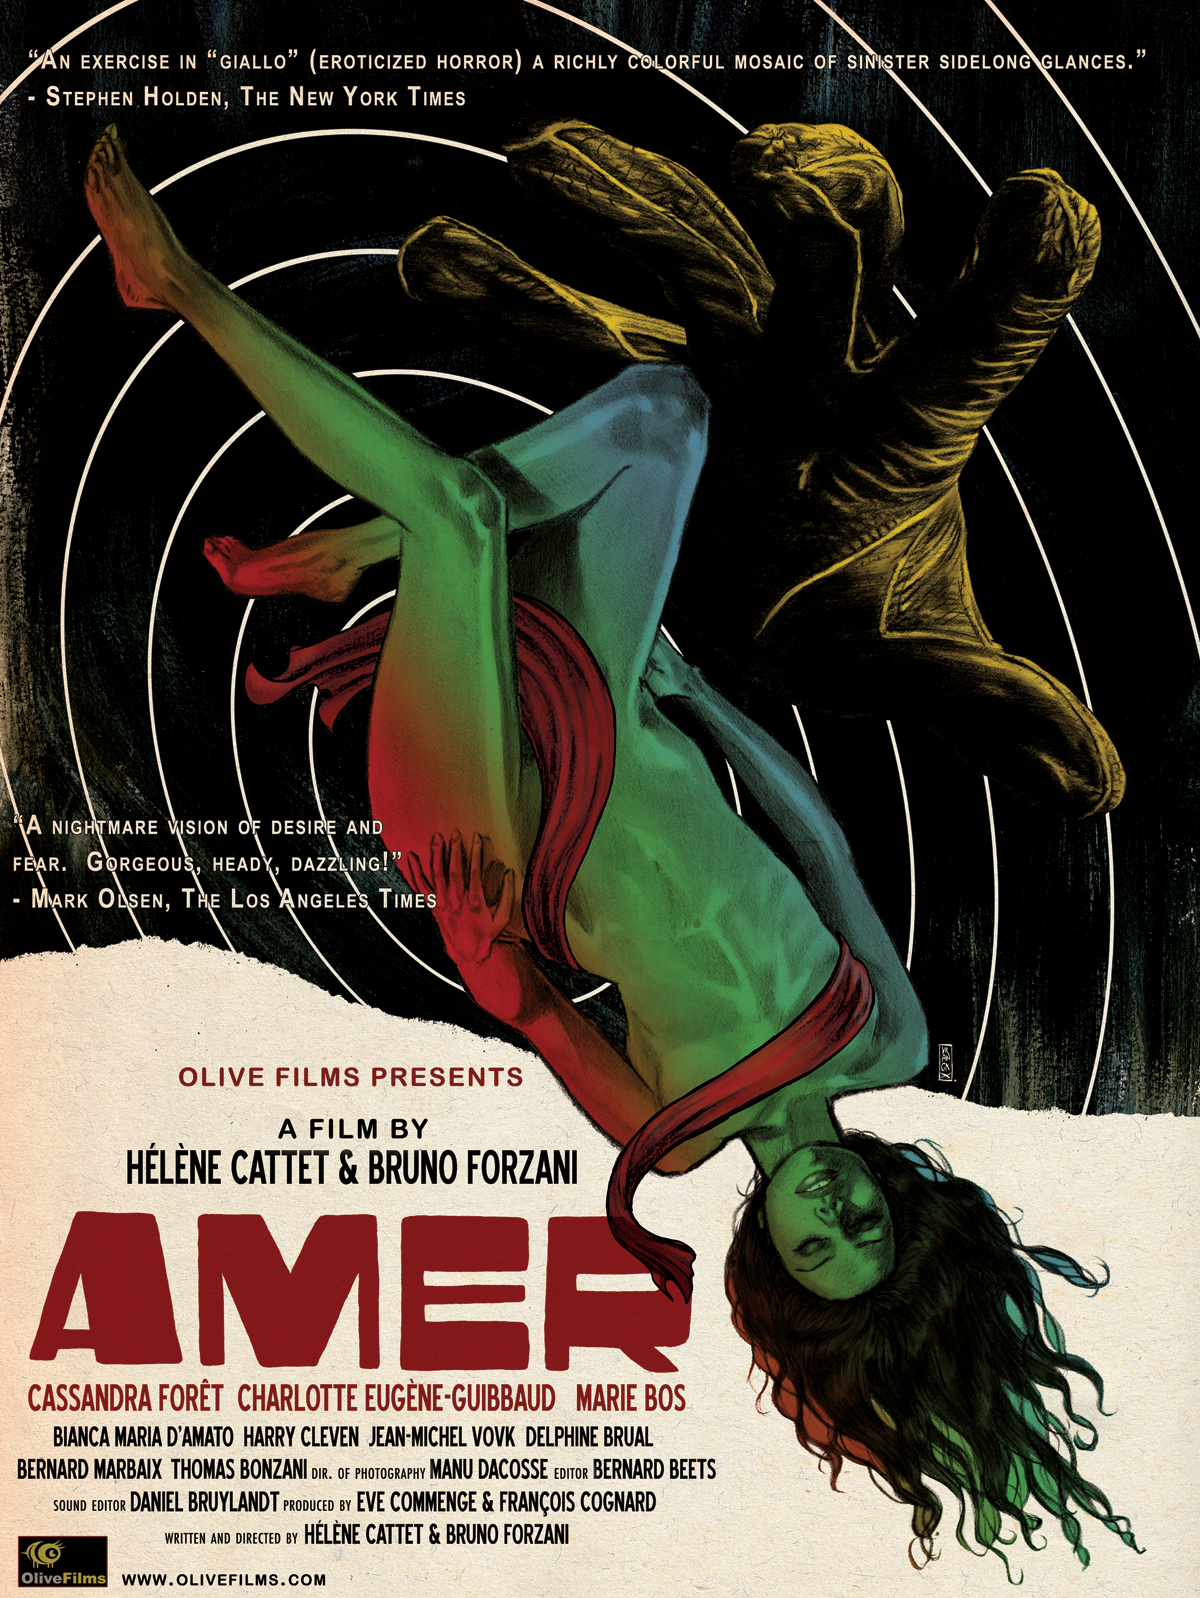 AMER A Film By Hélène Cattet And Bruno Forzani Will Open In NYC & LA On October 29